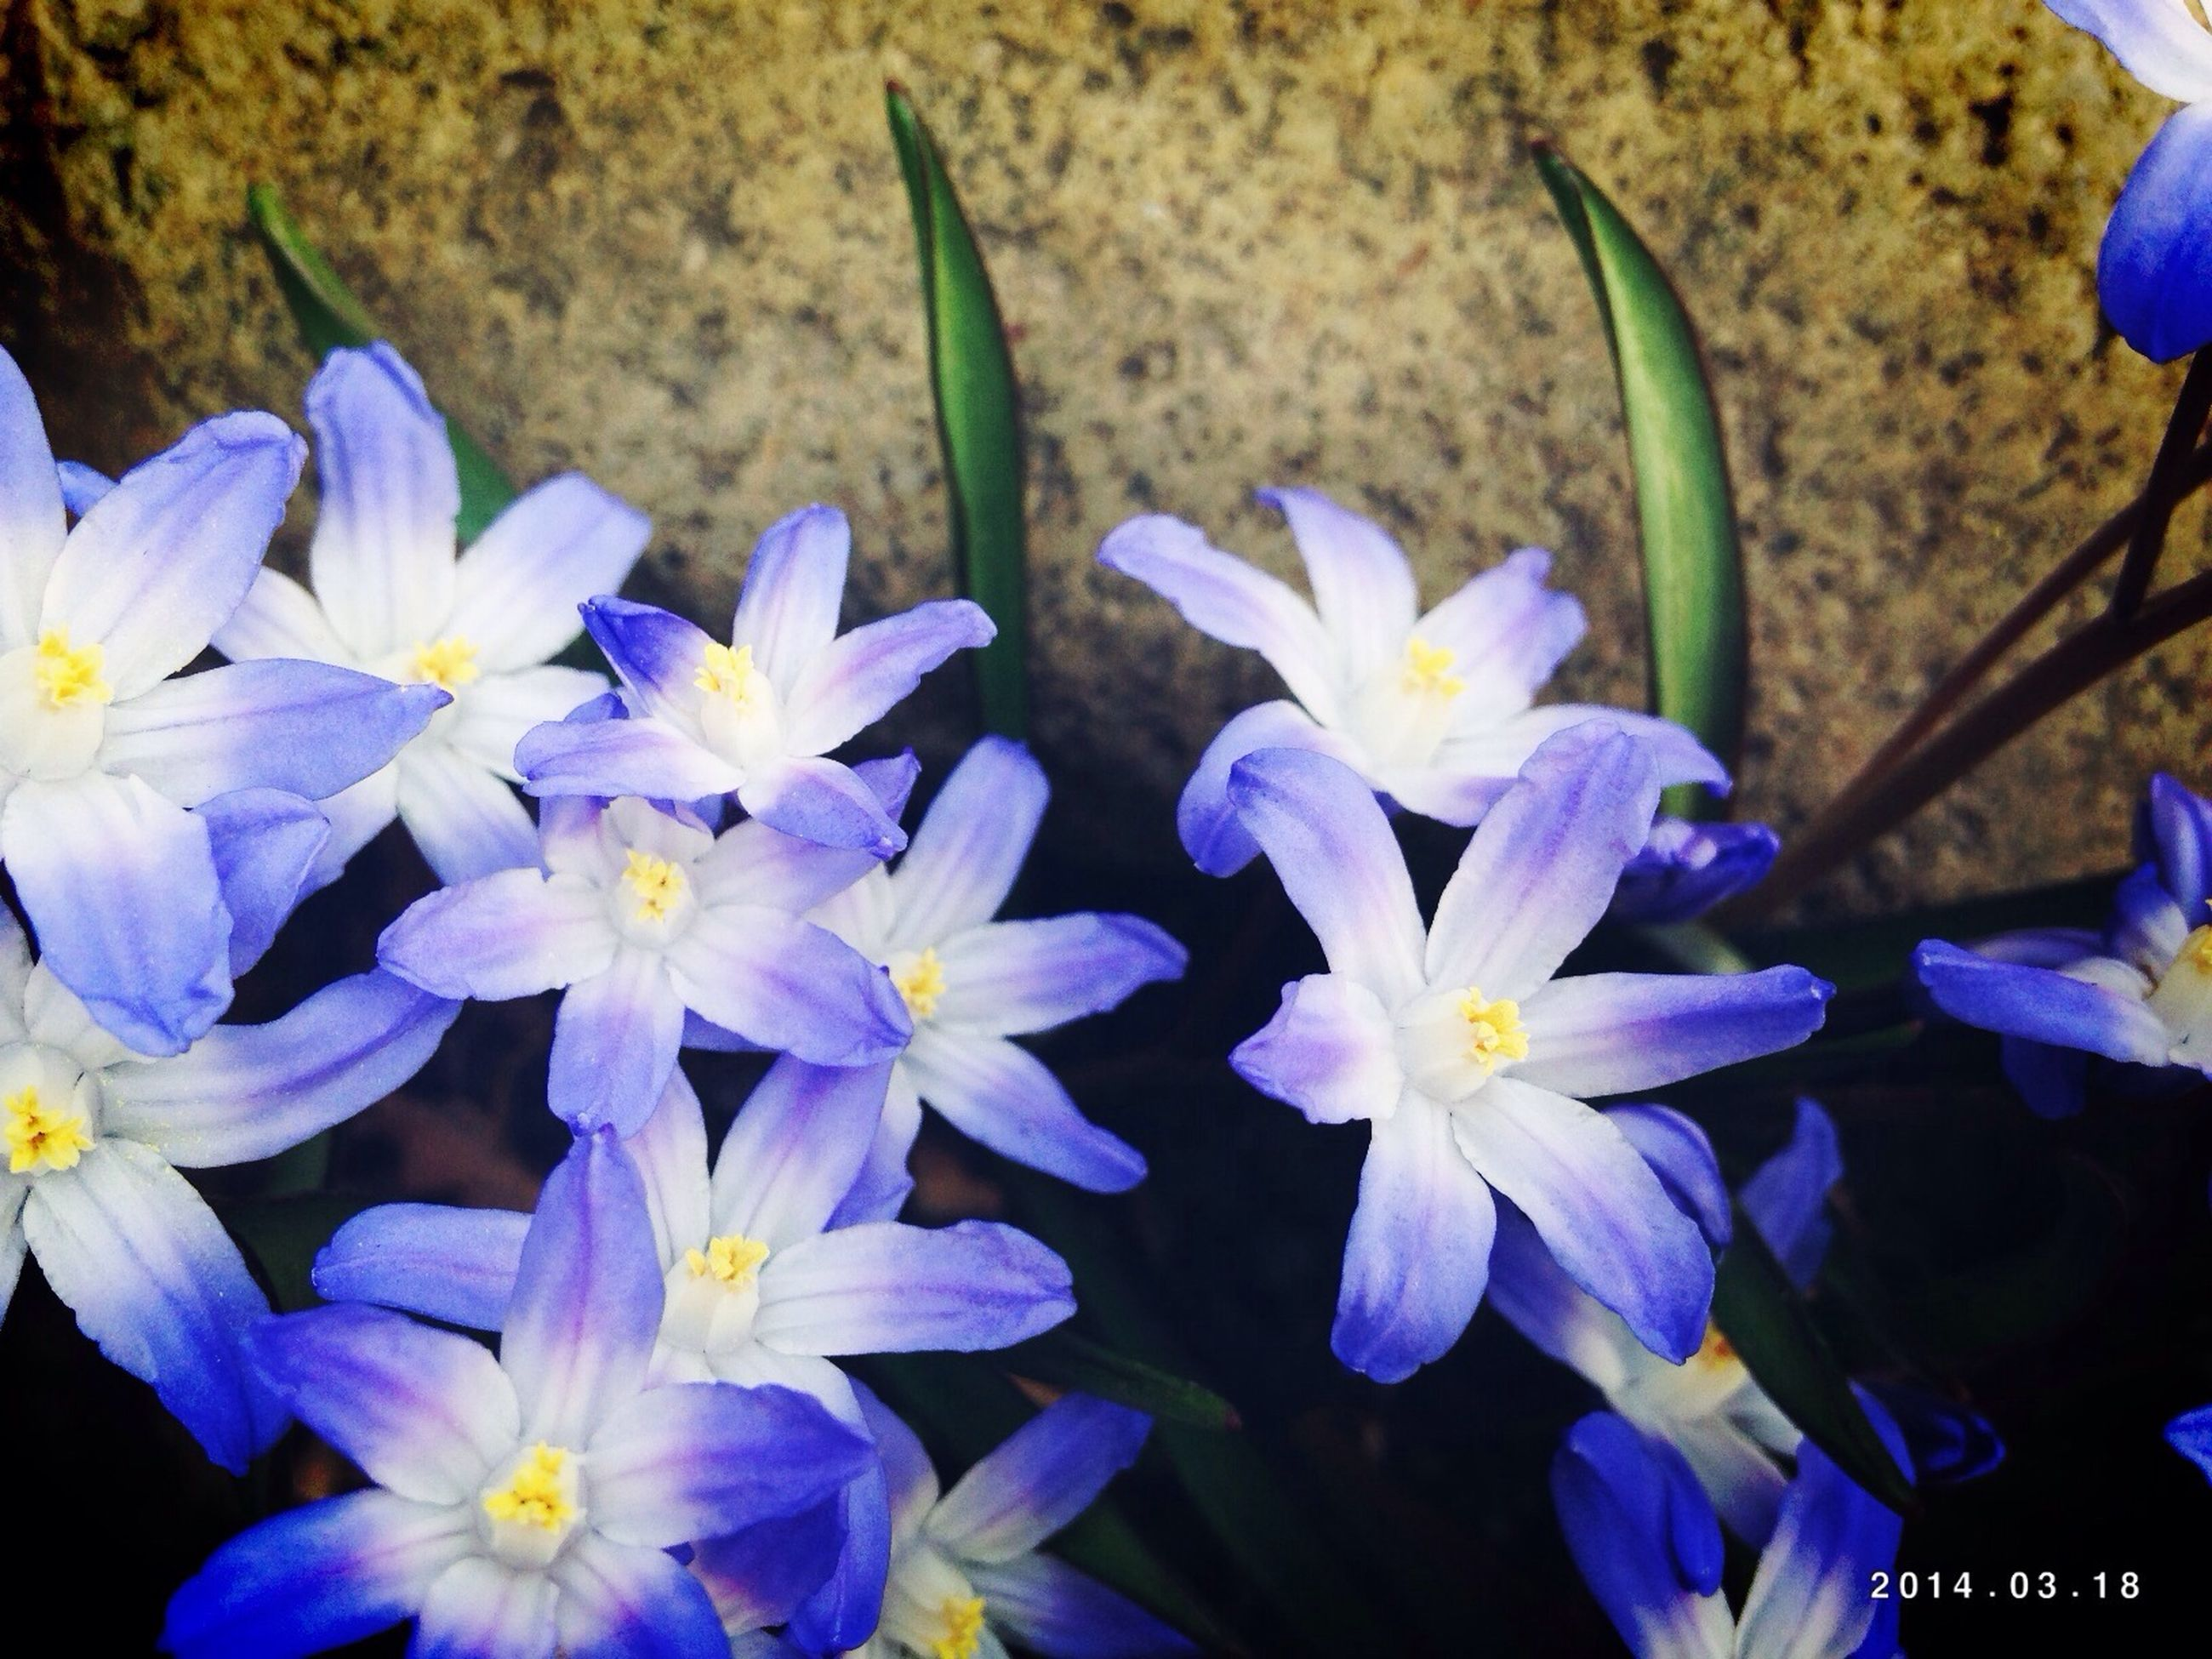 flower, purple, petal, freshness, fragility, blue, growth, flower head, plant, beauty in nature, close-up, blooming, nature, focus on foreground, high angle view, in bloom, park - man made space, selective focus, no people, outdoors